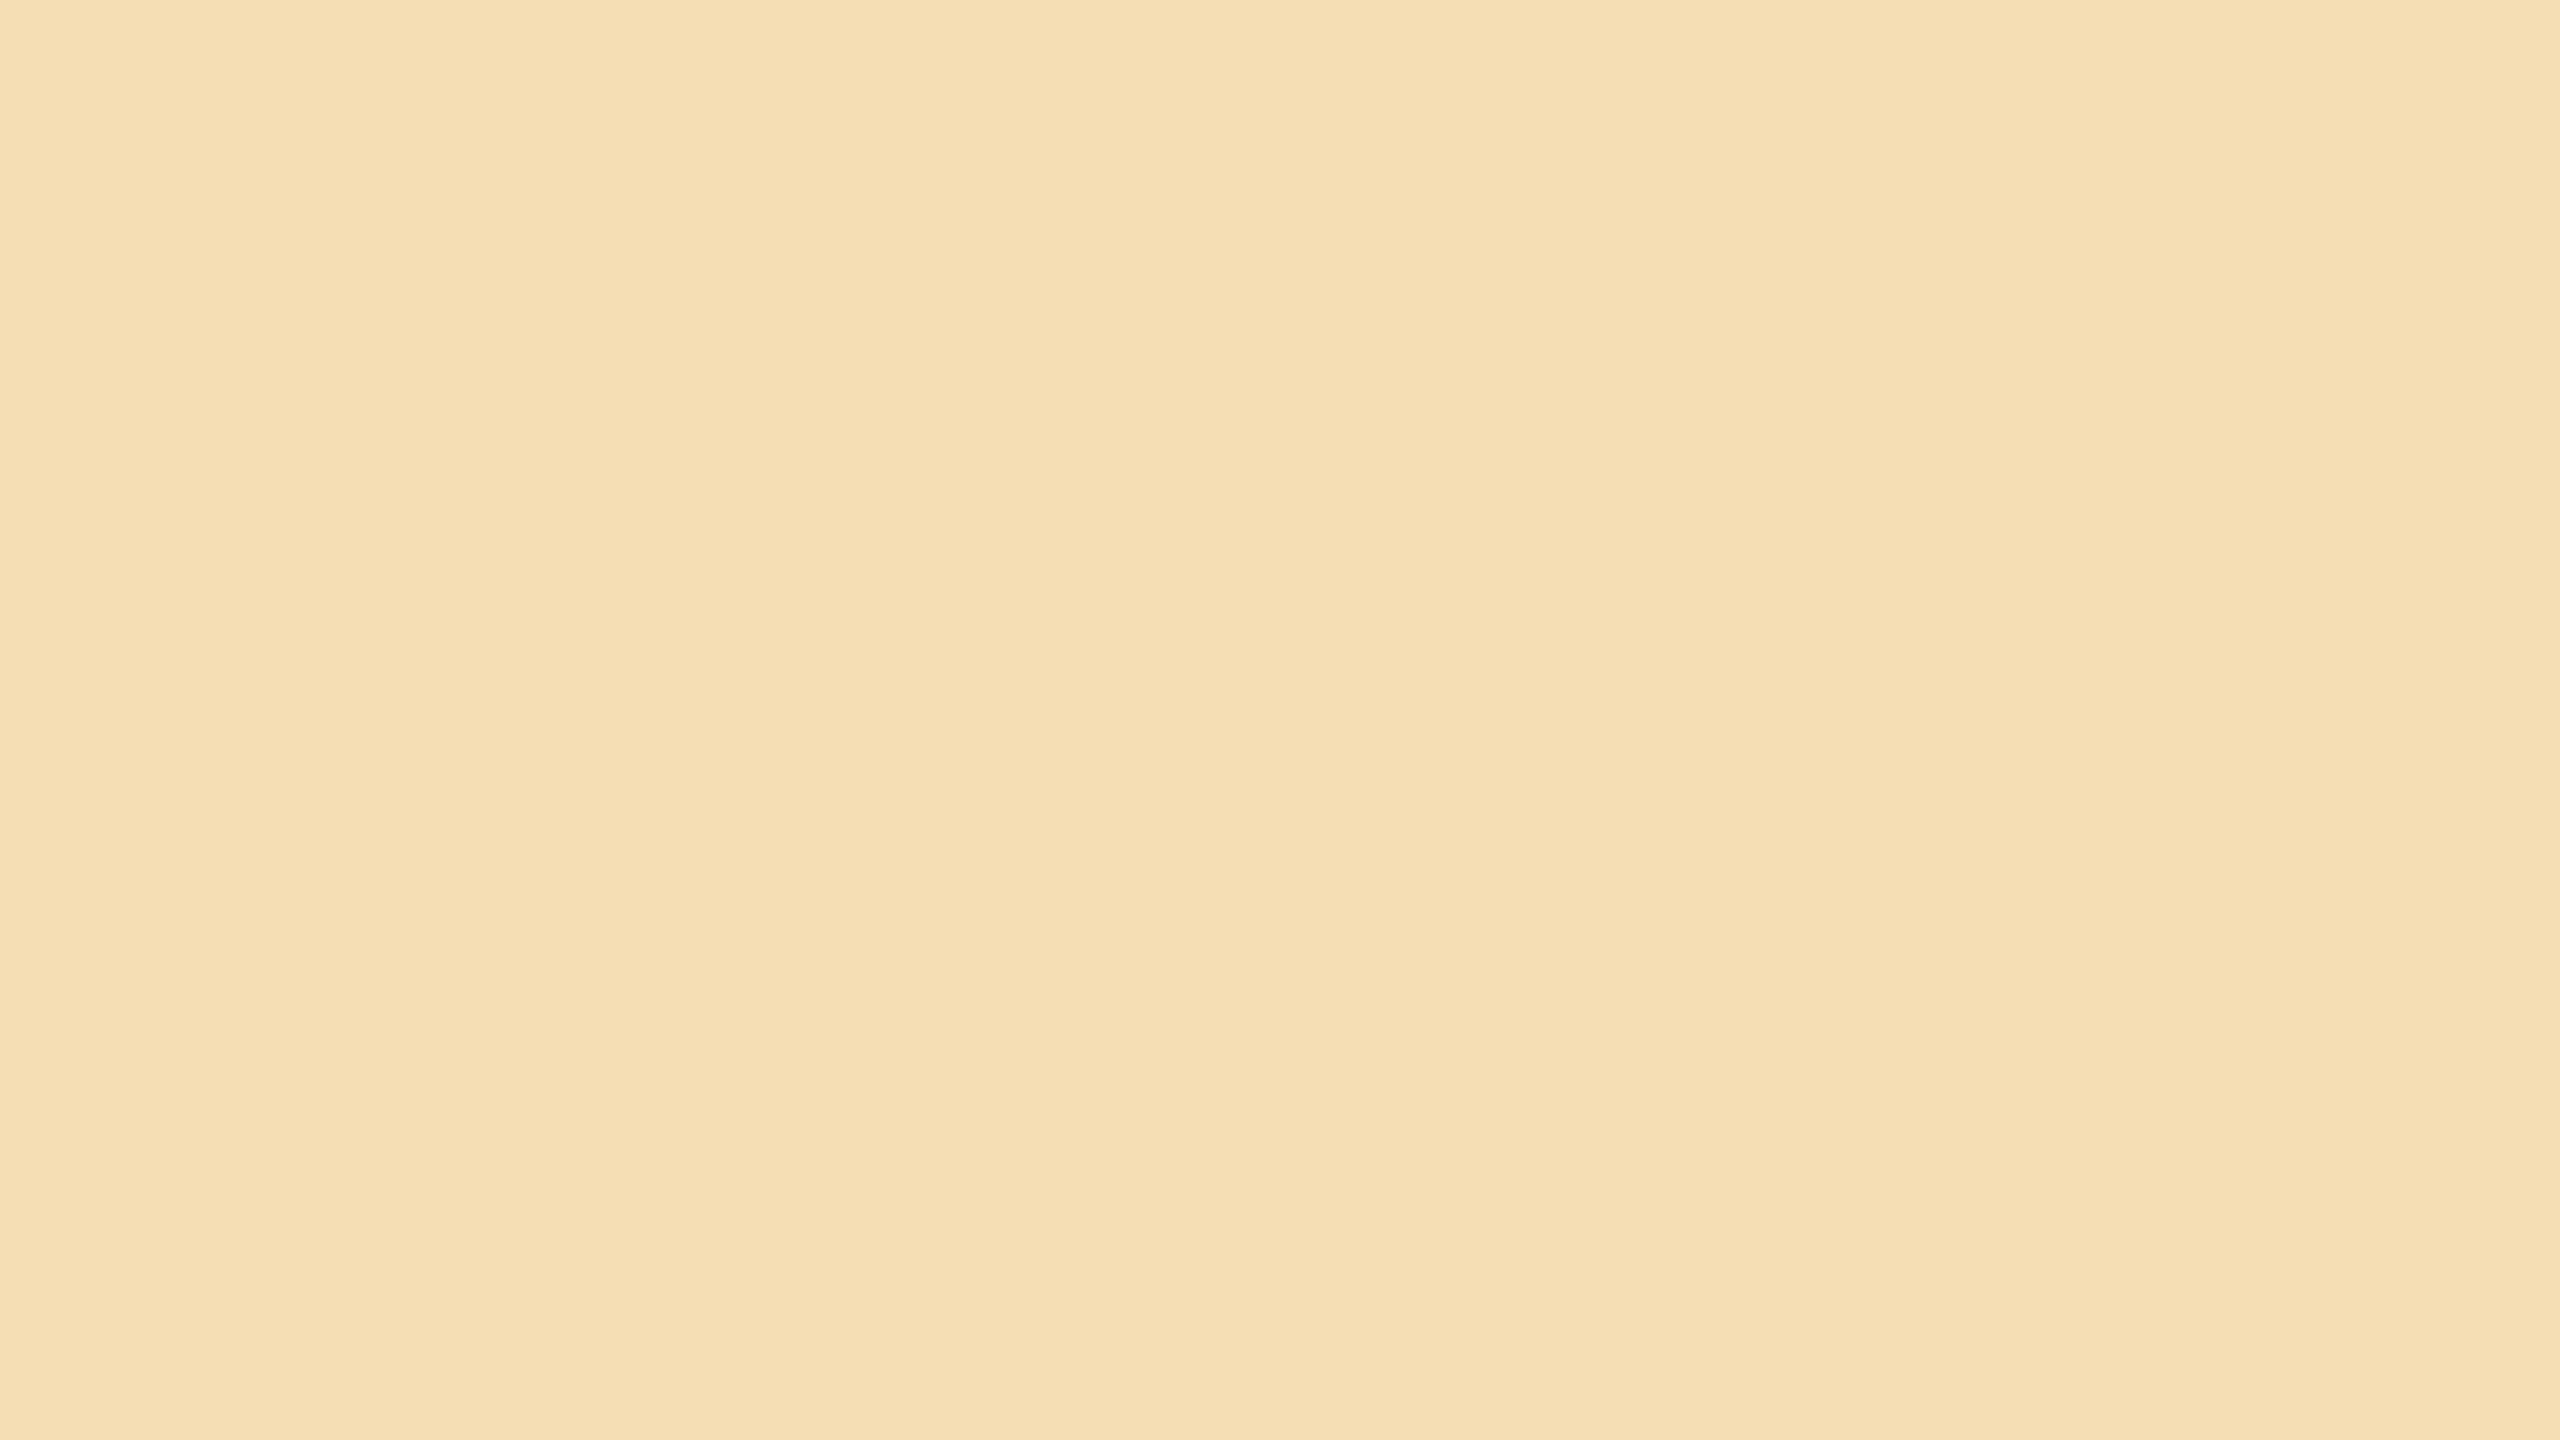 2560x1440 Wheat Solid Color Background